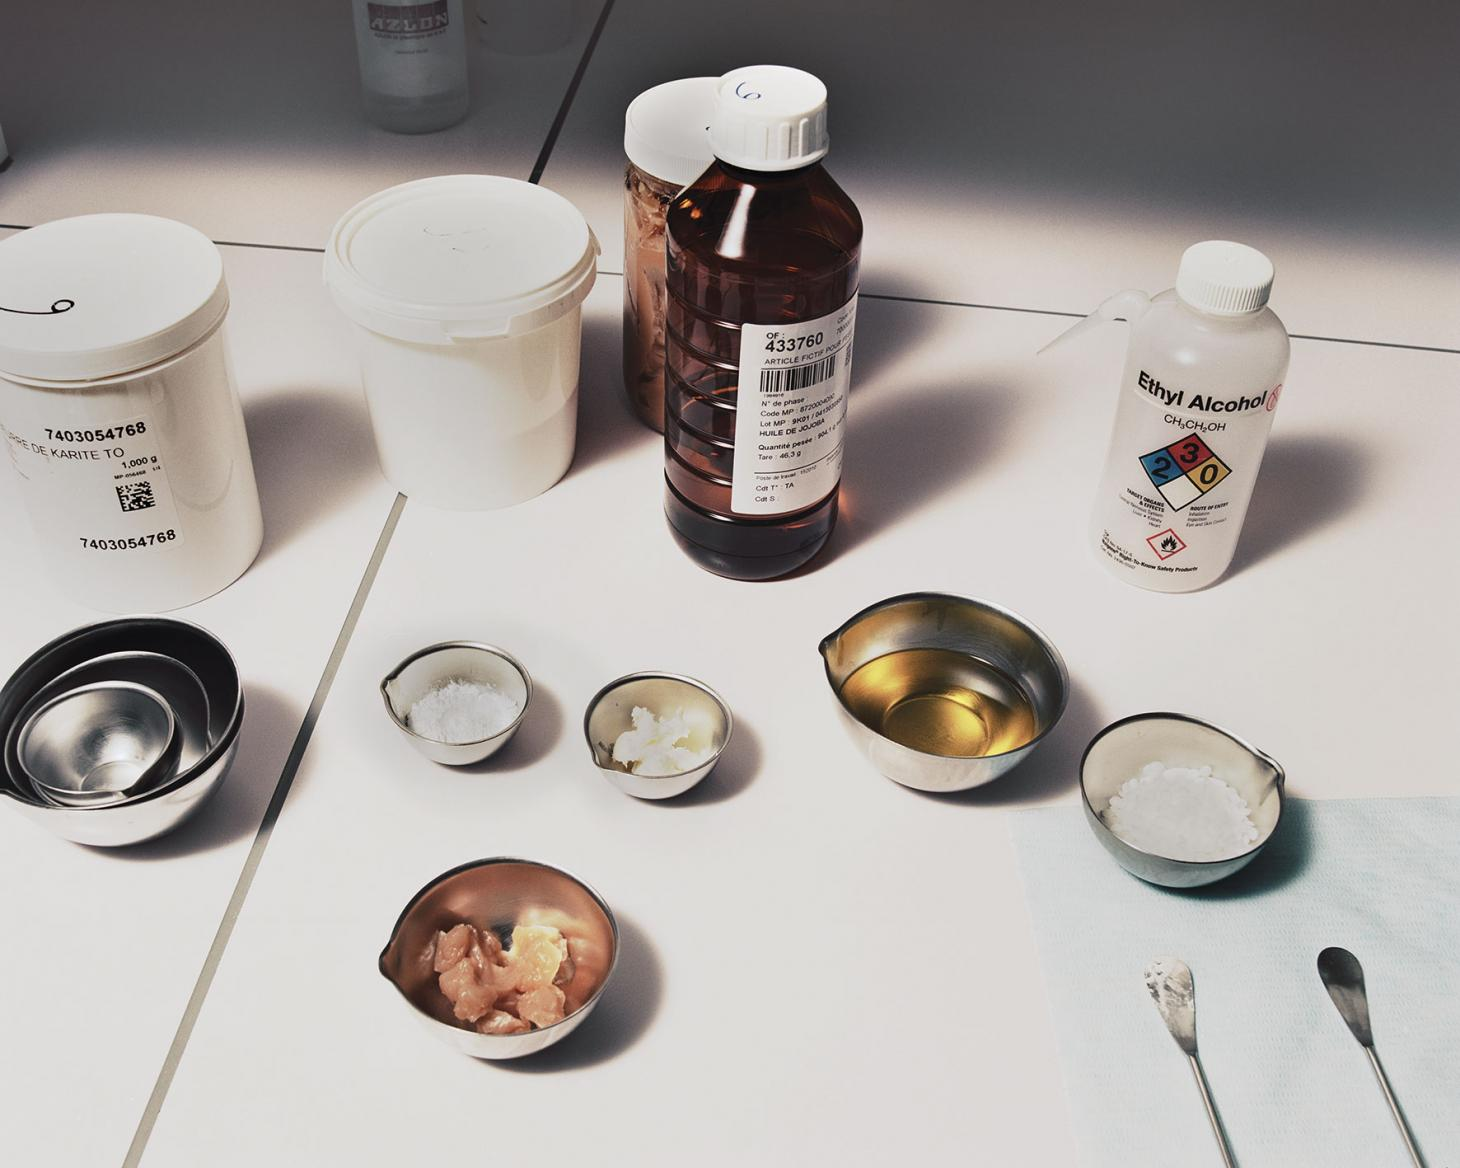 Dior cosmetic materials used by researchers at Helios